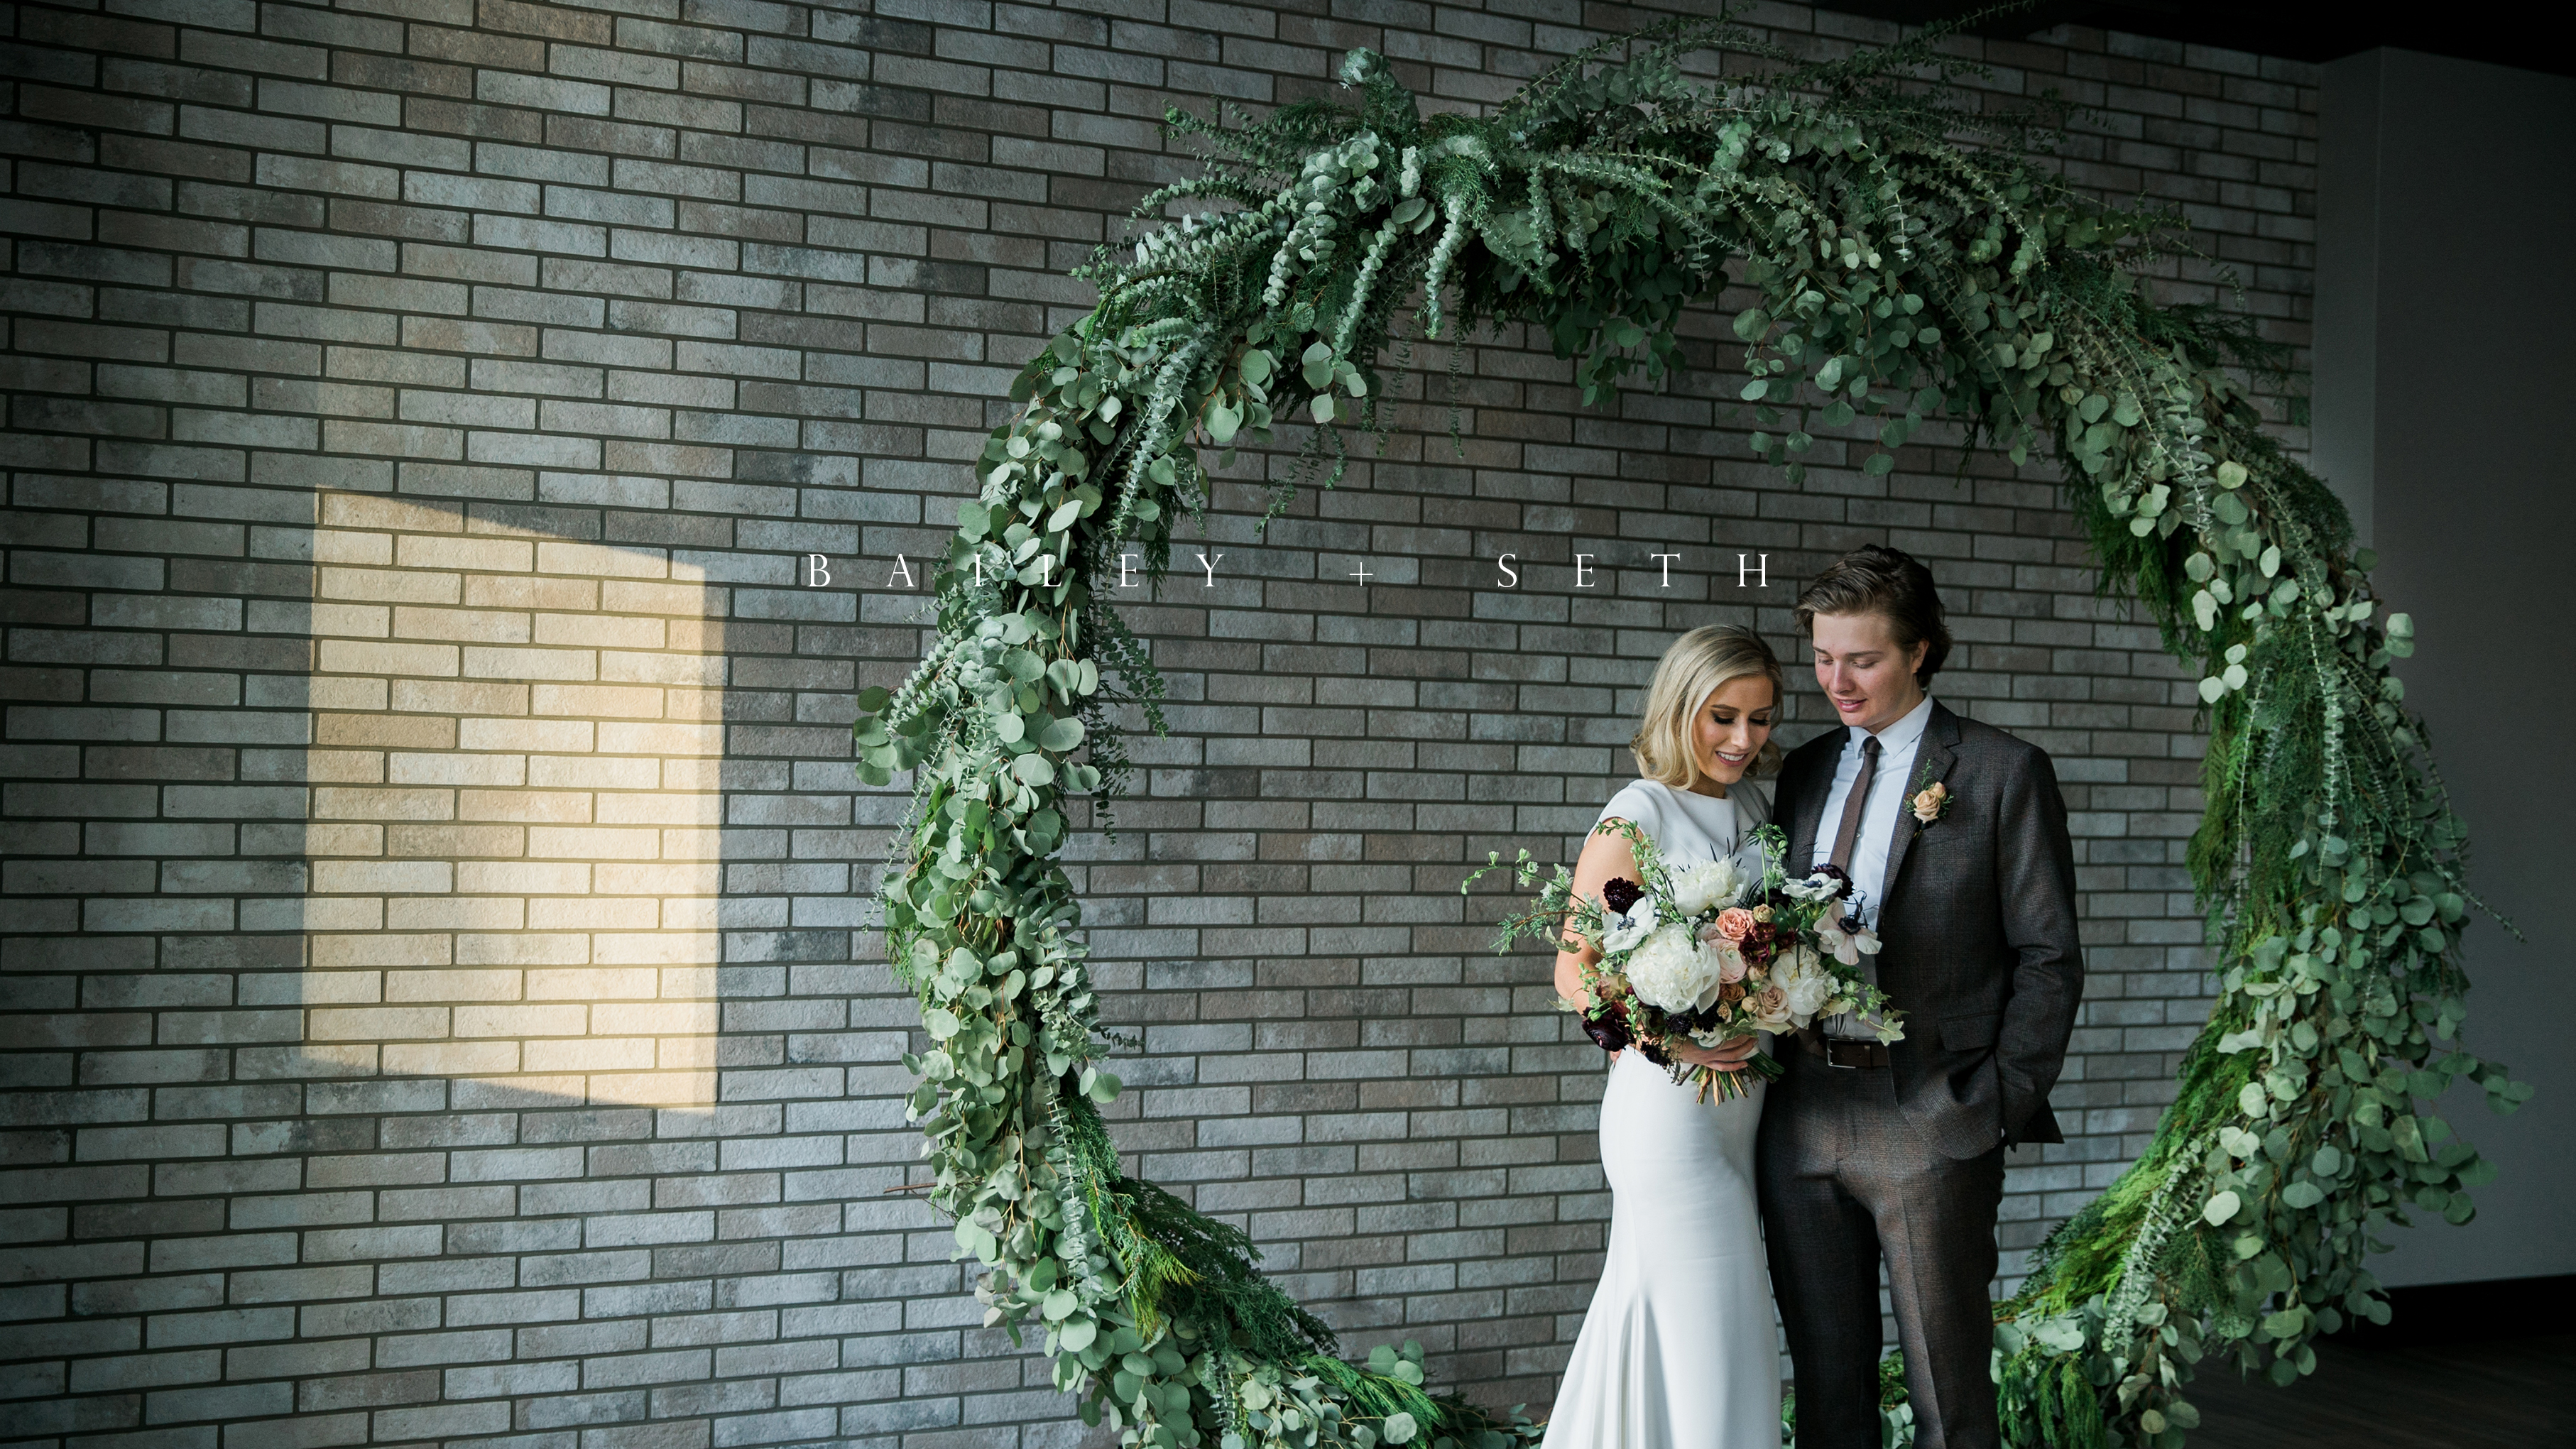 Seth + Bailey | Calgary, Canada | The Hudson